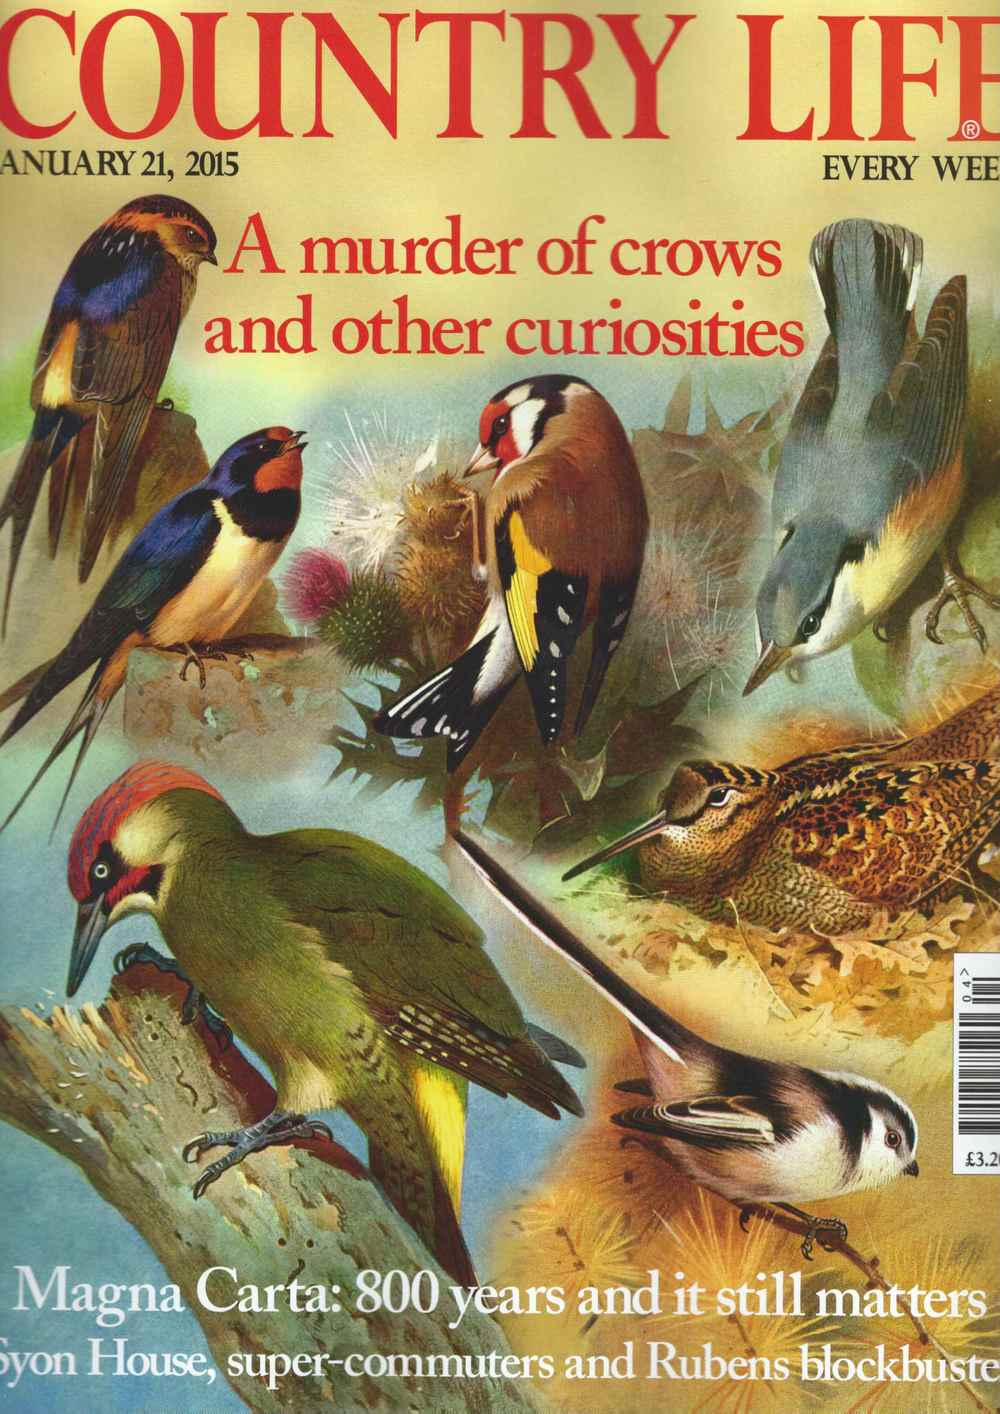 Country Life, 21 January 2015